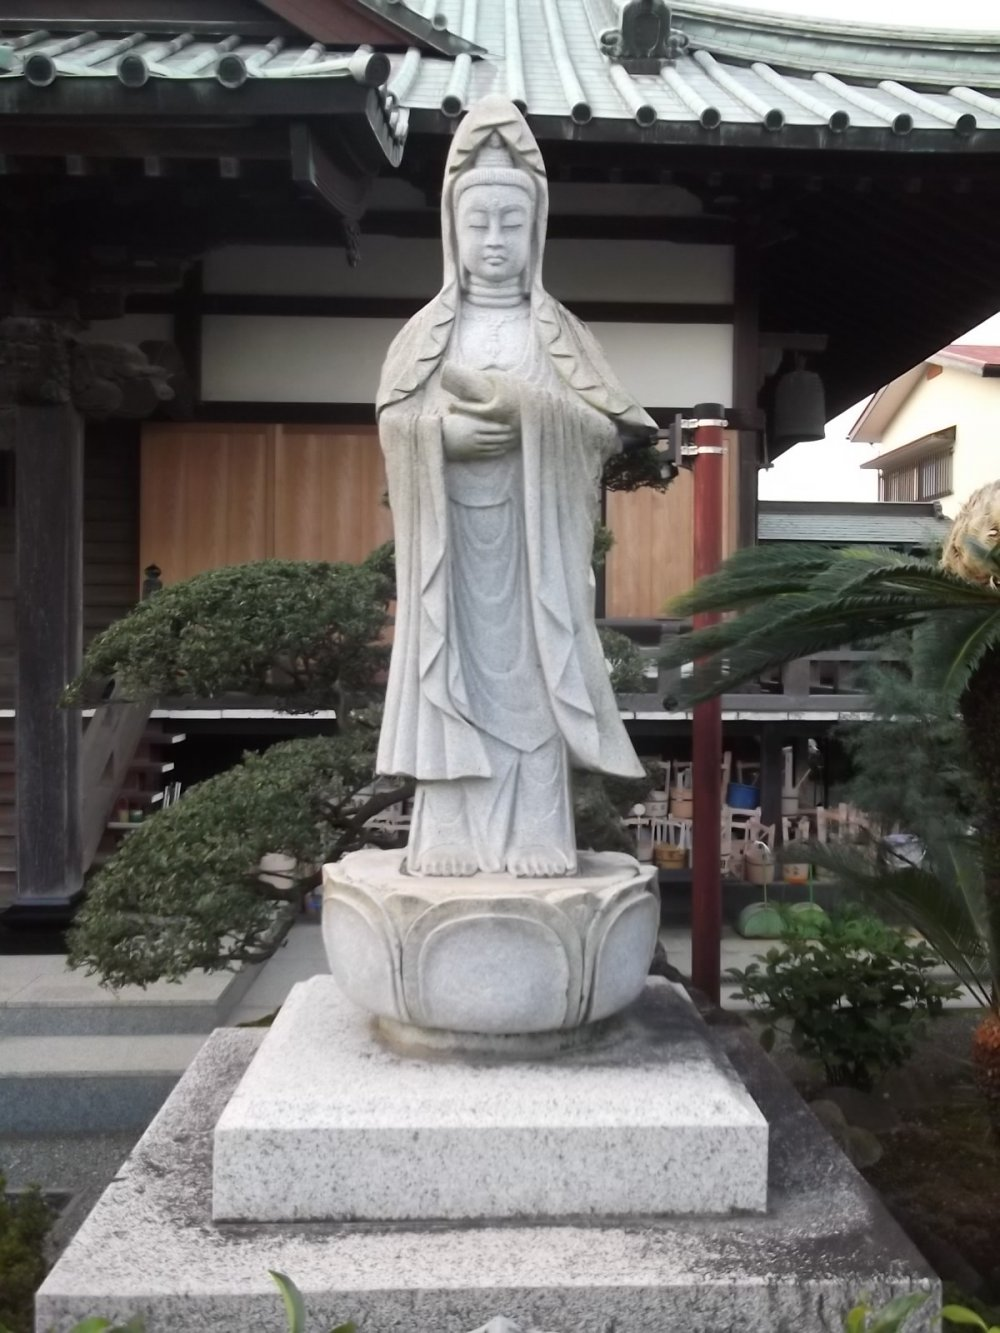 A statue in the grounds